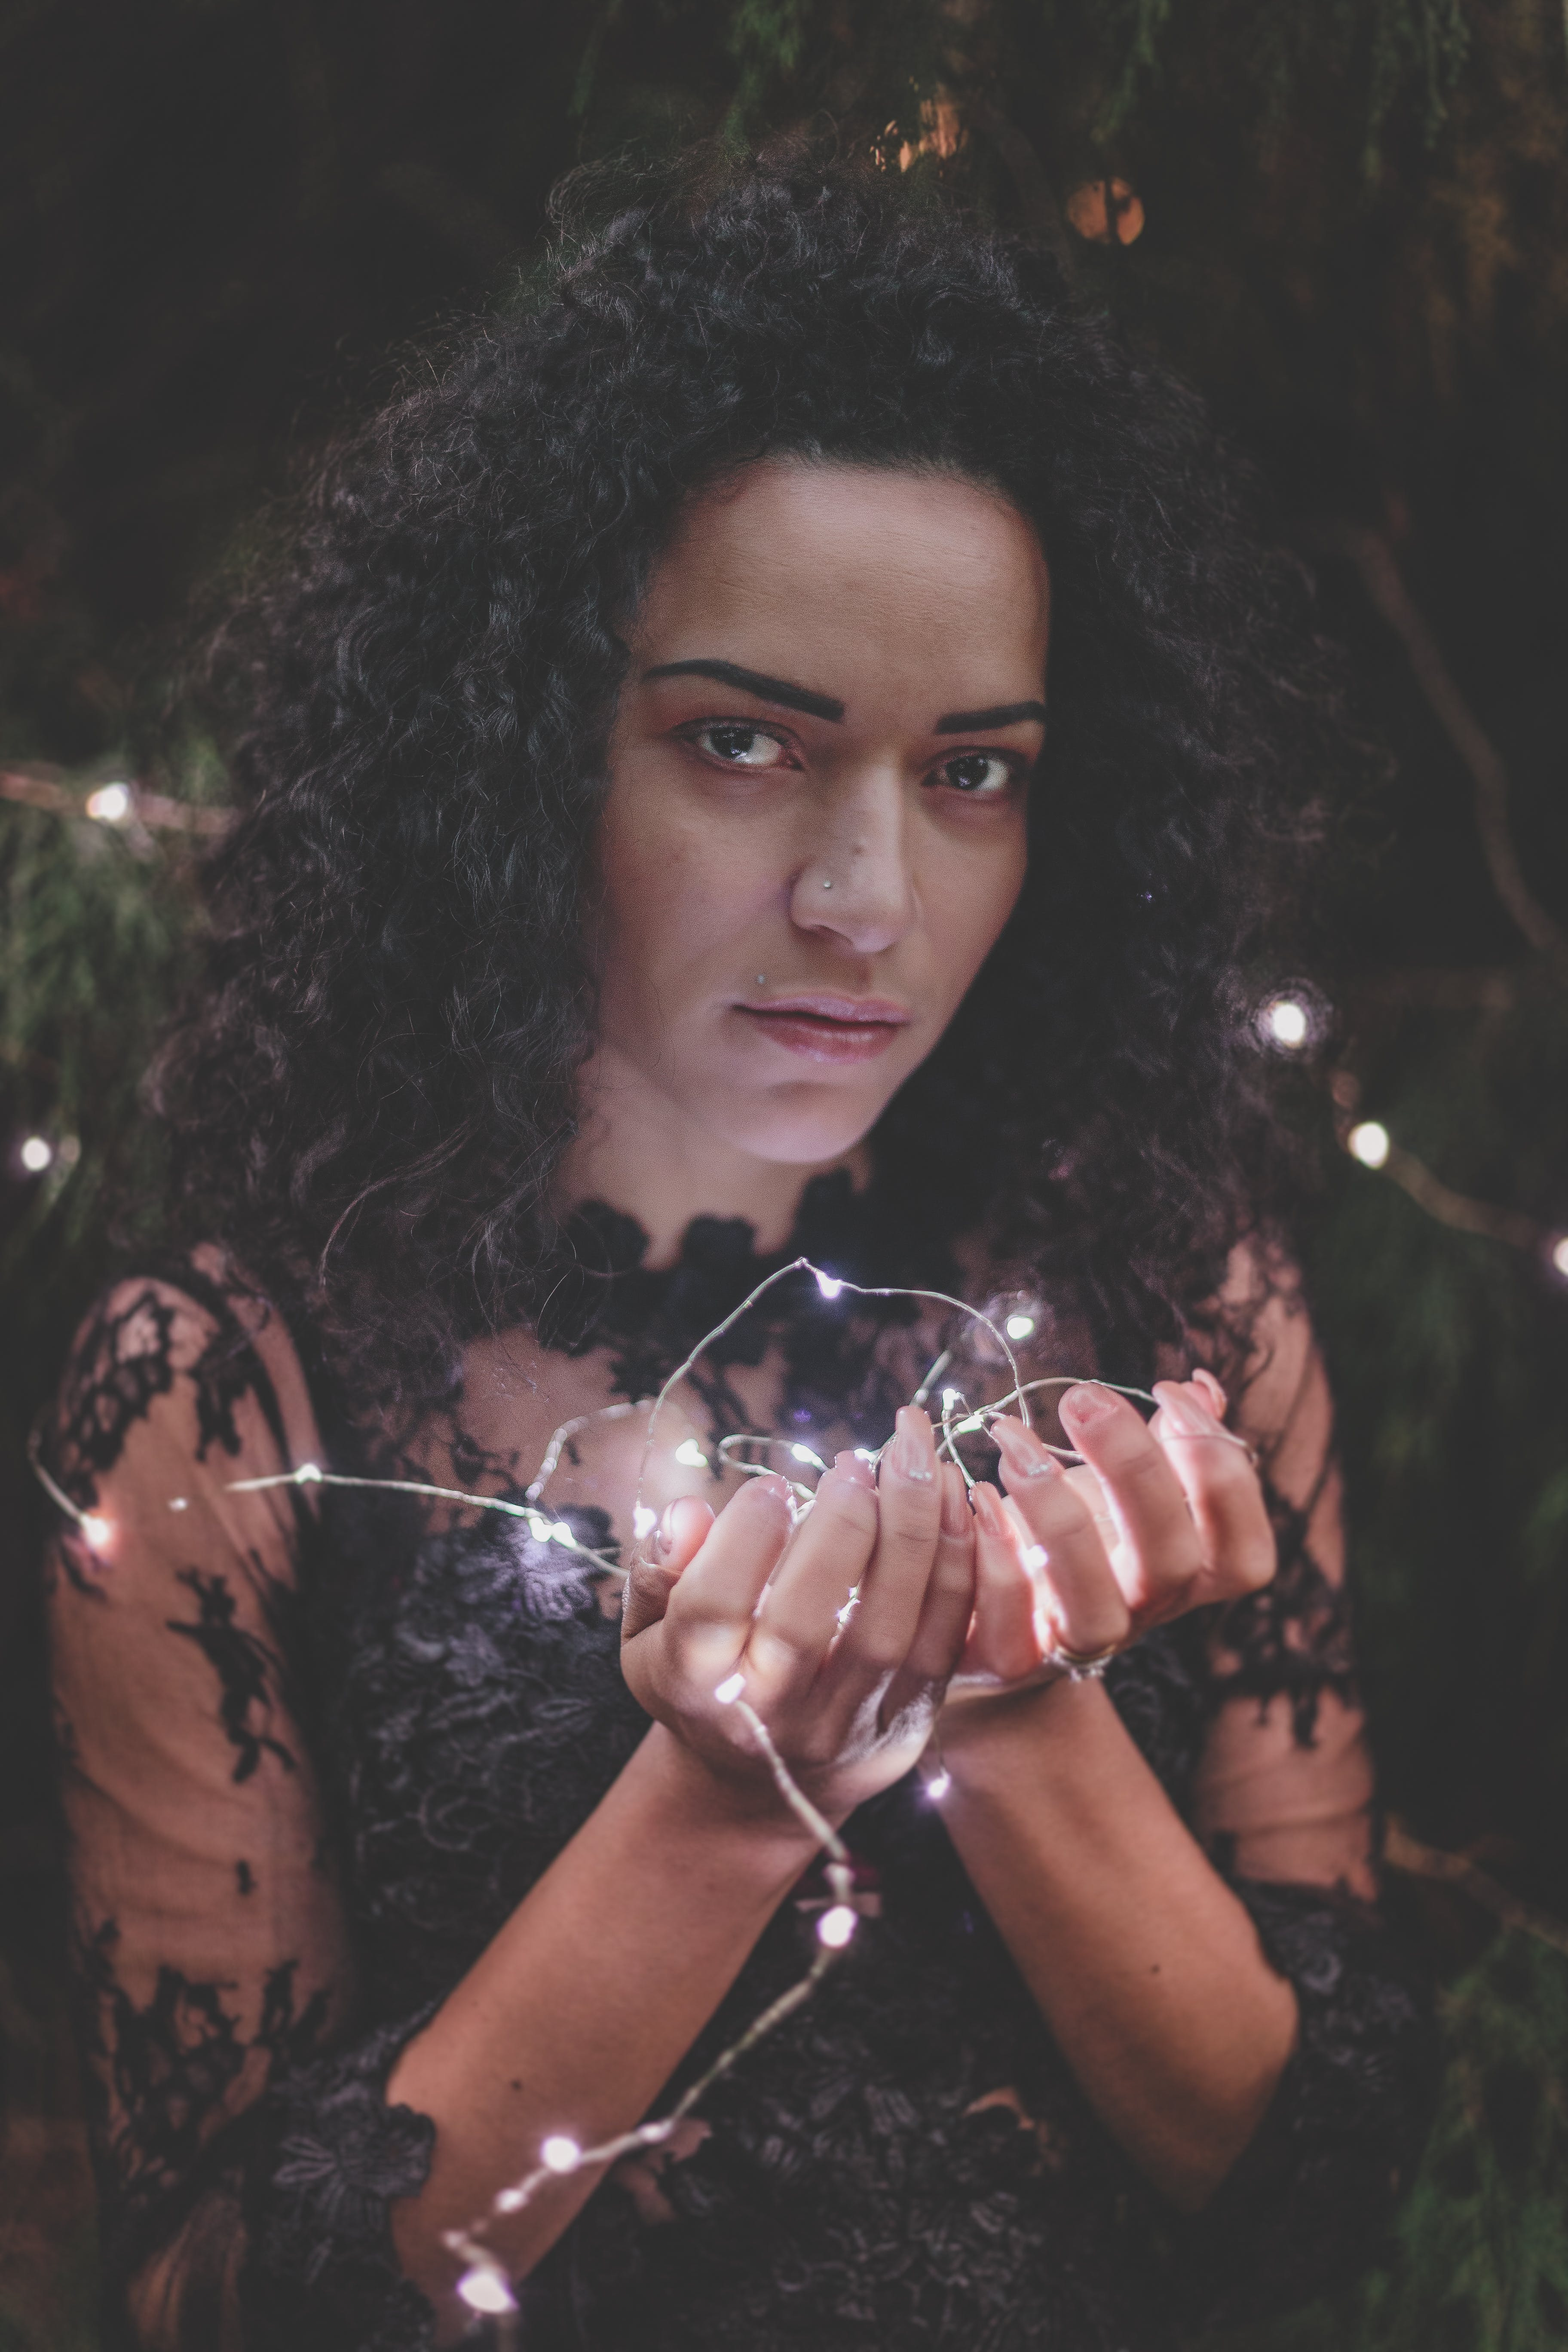 Woman In Black Lace Dress Holding String Lights